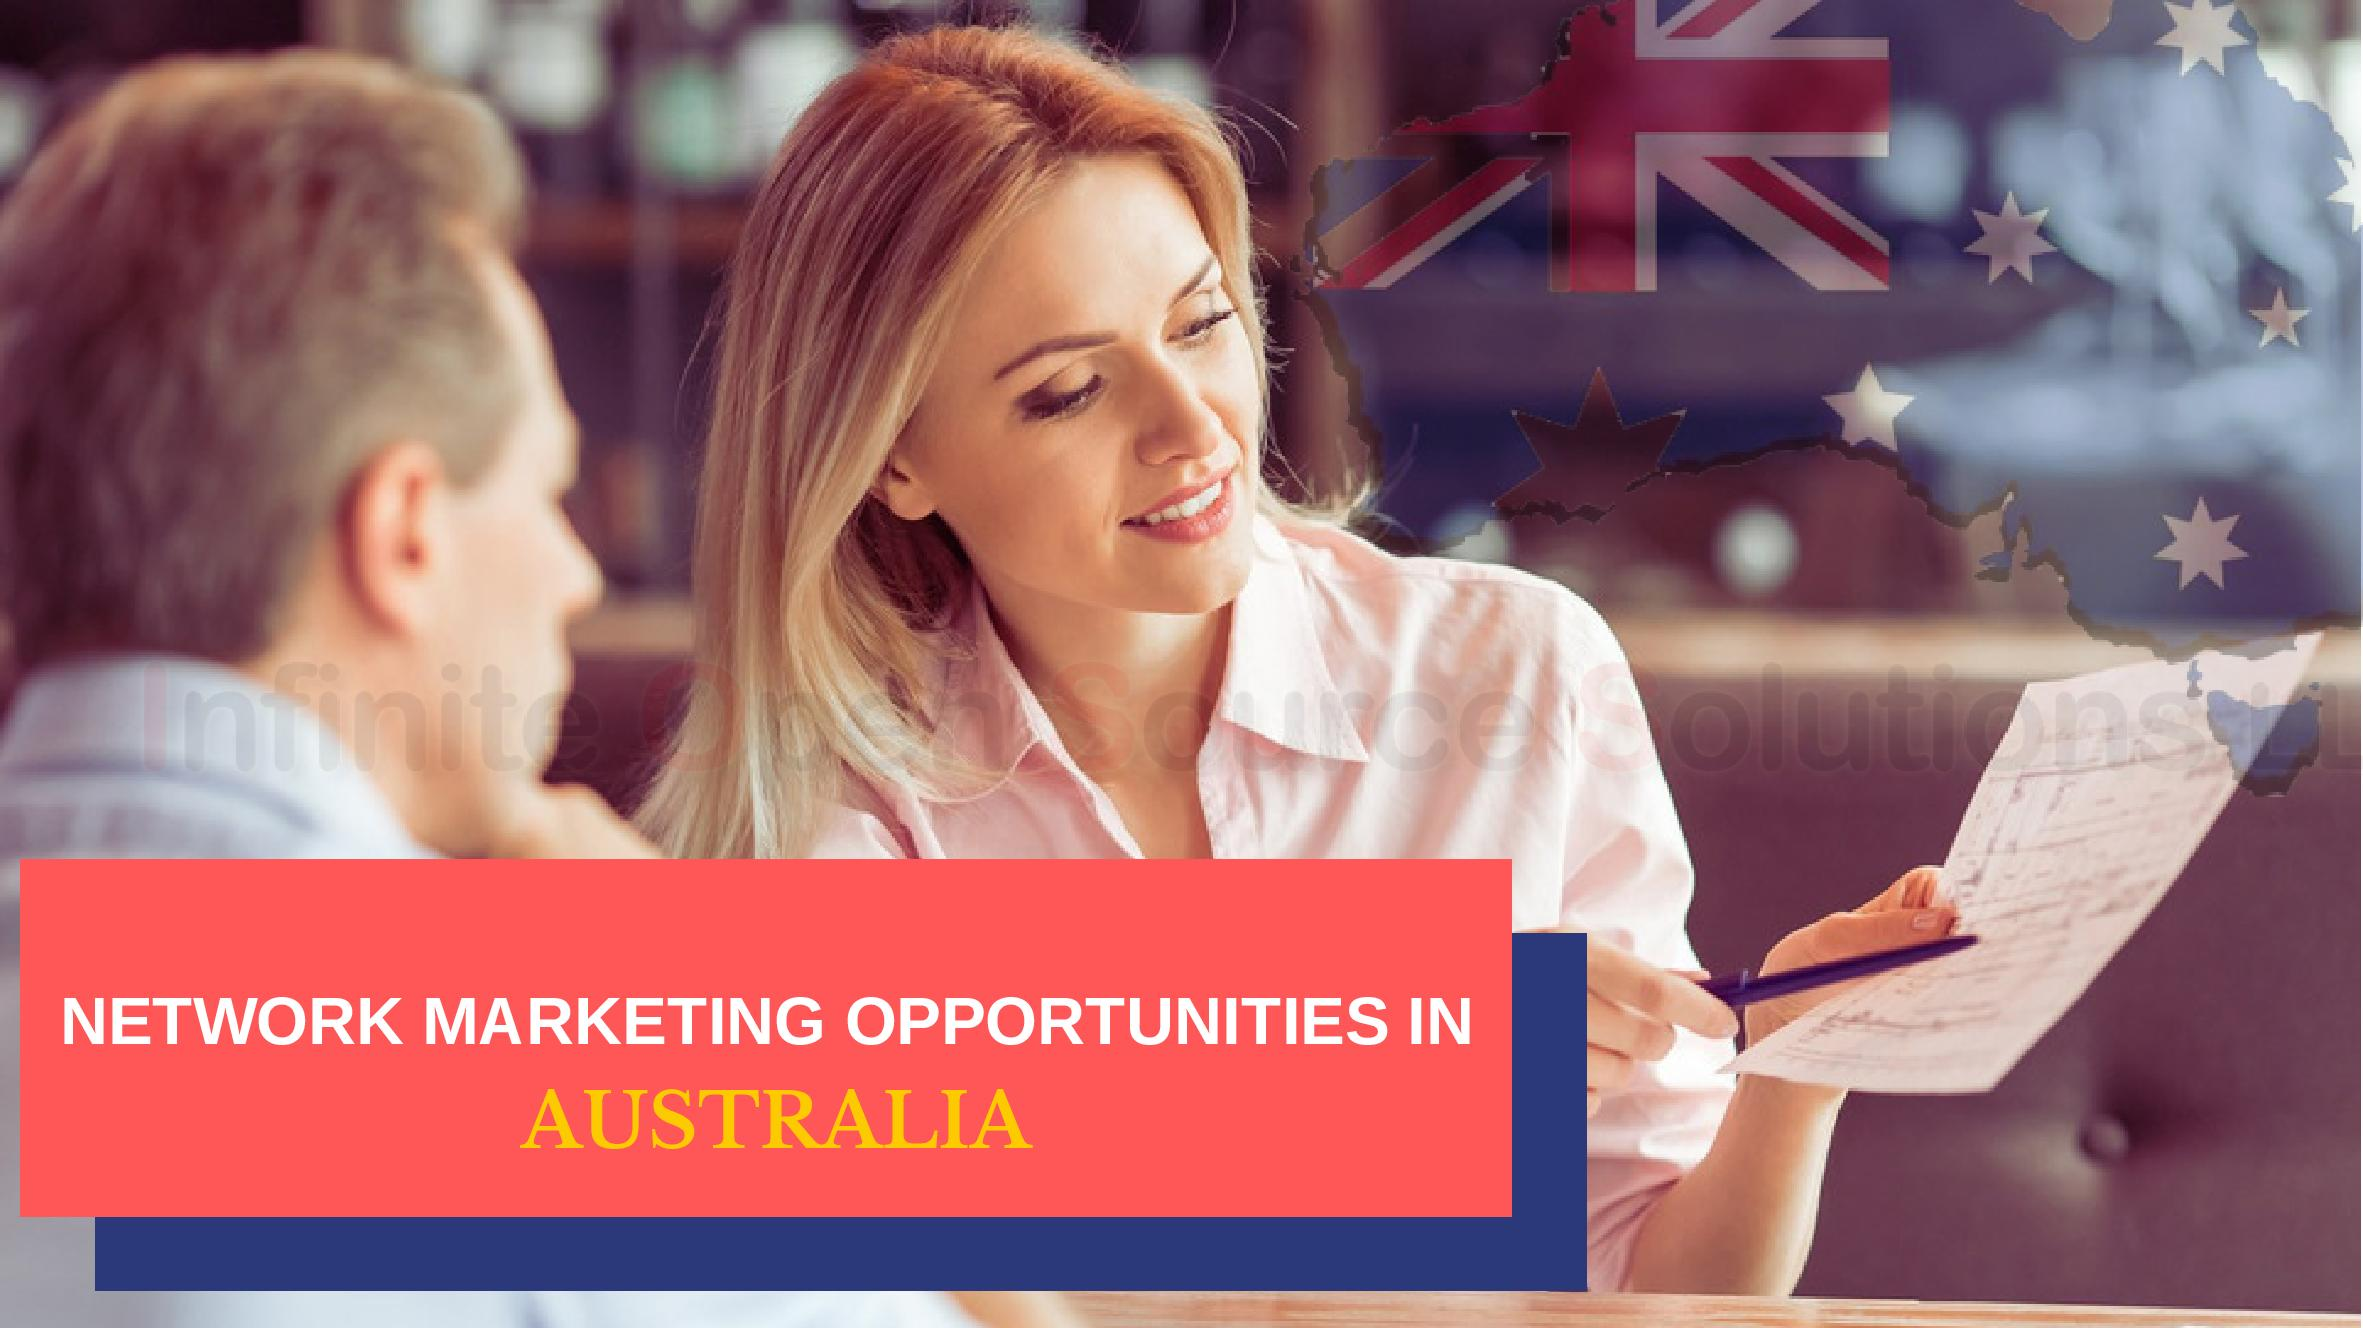 Network Marketing Opportunities in Australia